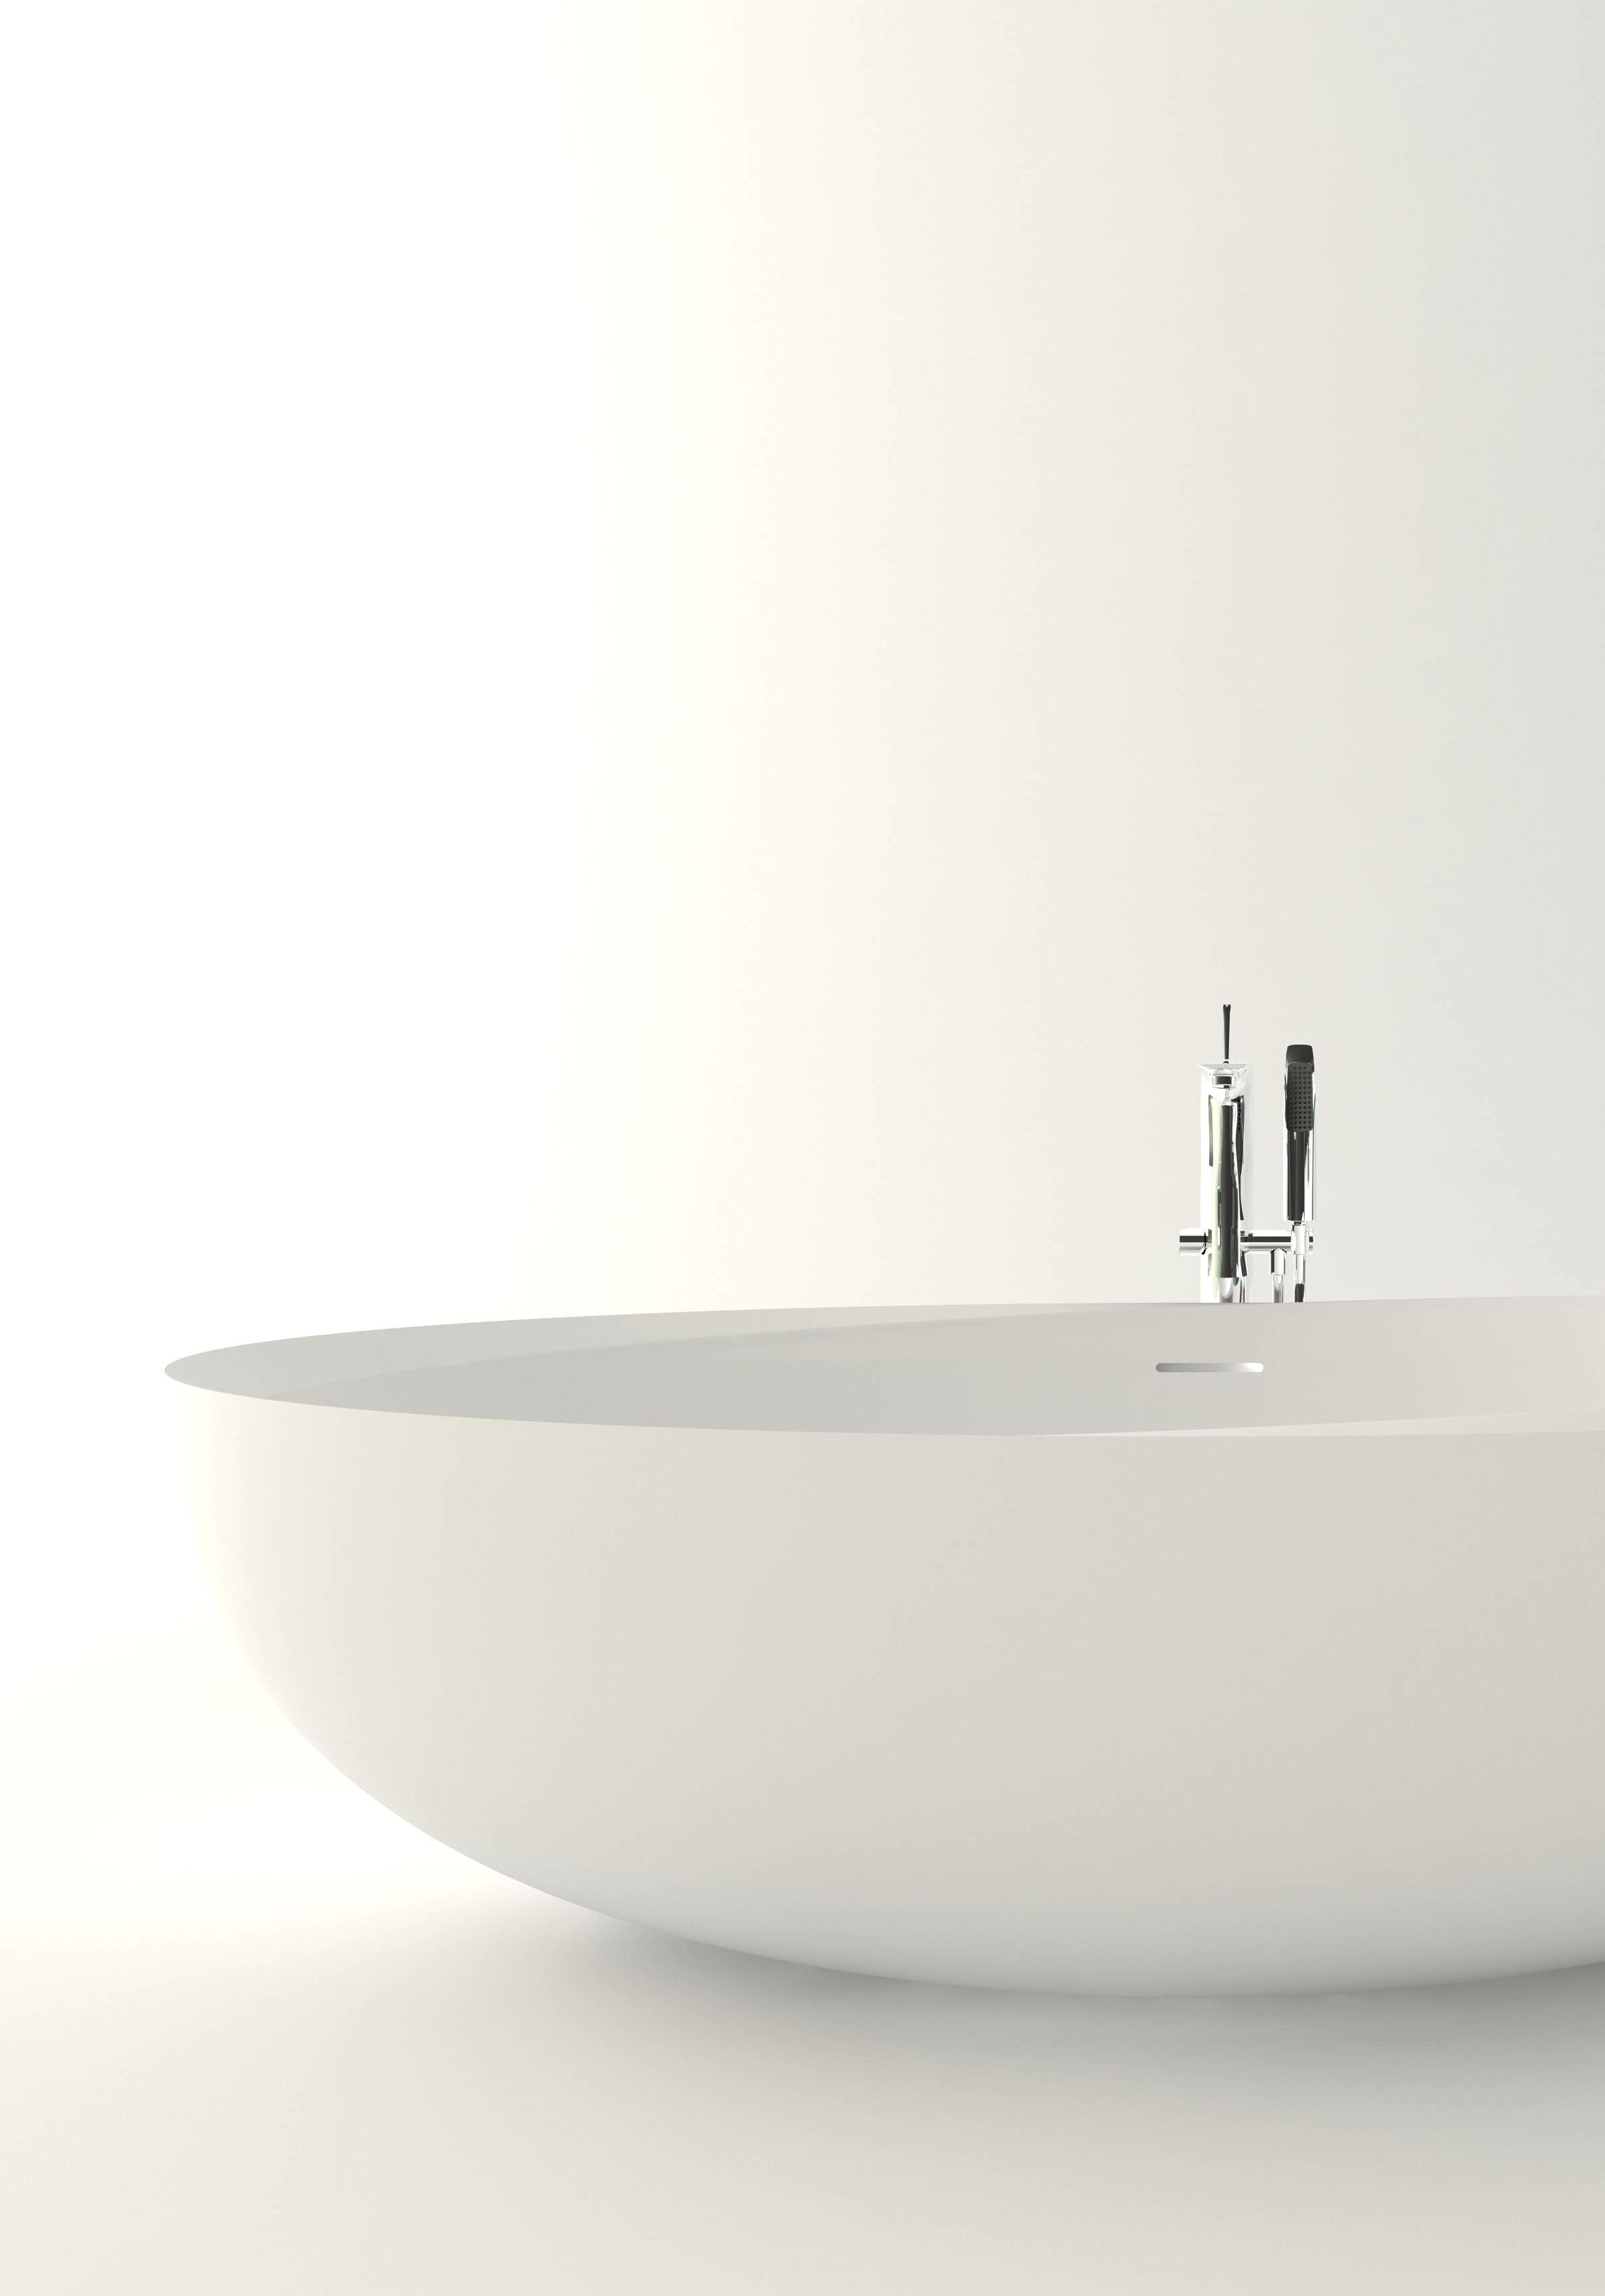 Forced Bathroom Remodel In: I Bordi #bathtub In The Stand-alone Version Imbues Every